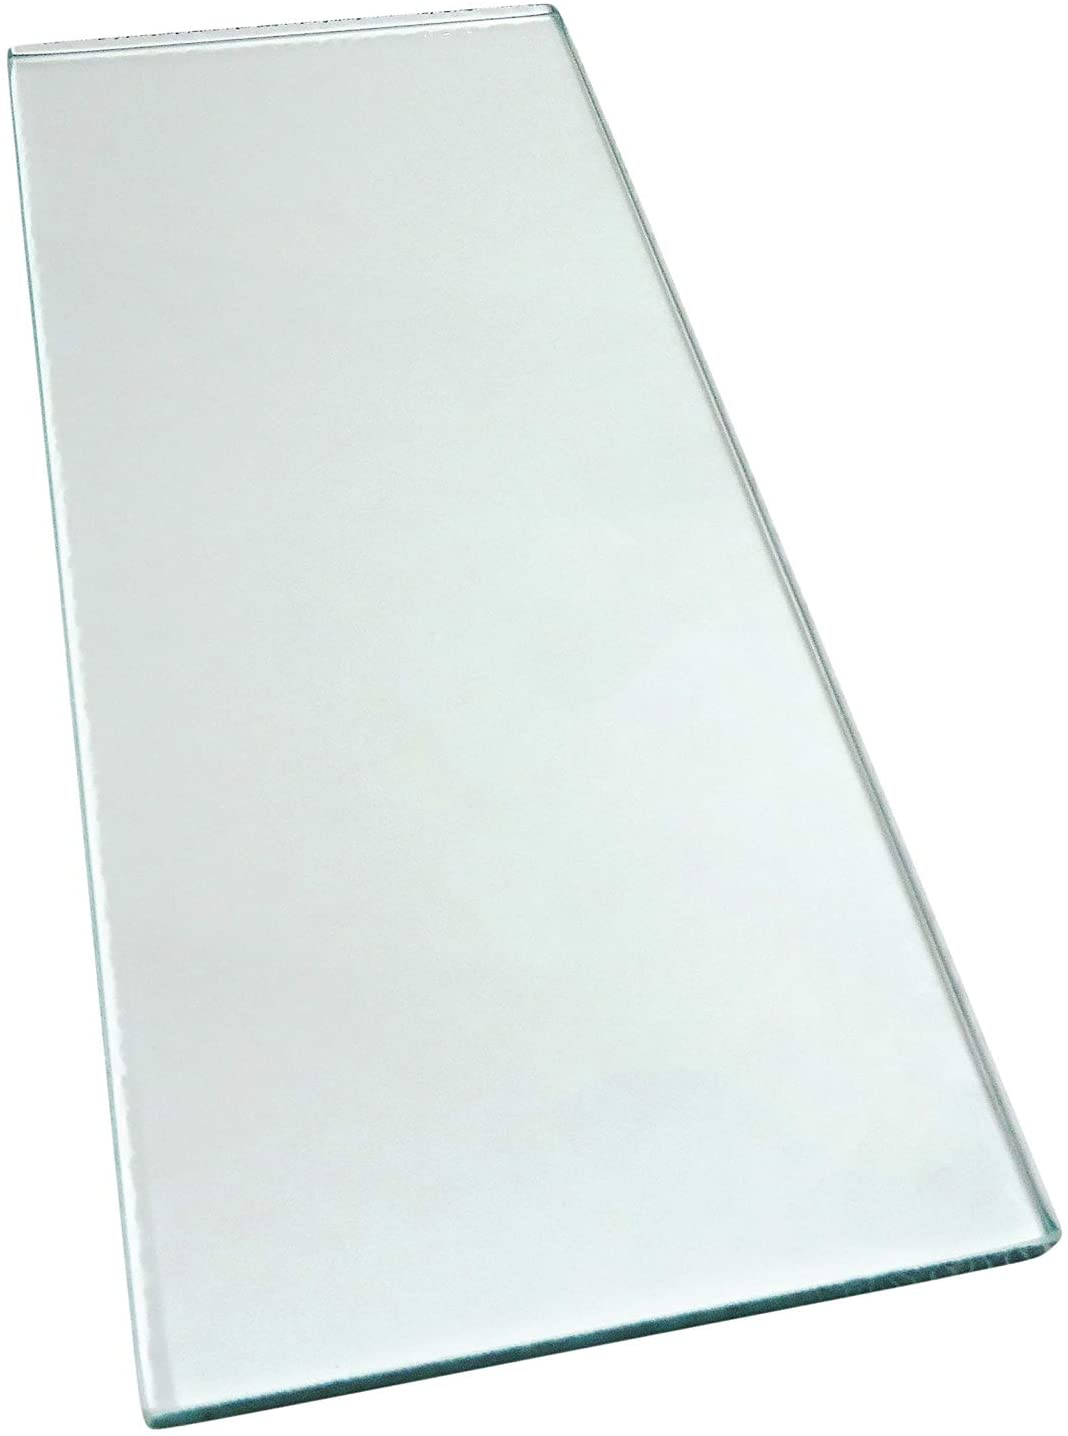 Taytools 279144 One Piece 5//16 x 5 x 12 Dead Flat Float Glass for Scary Sharp Sharpening System